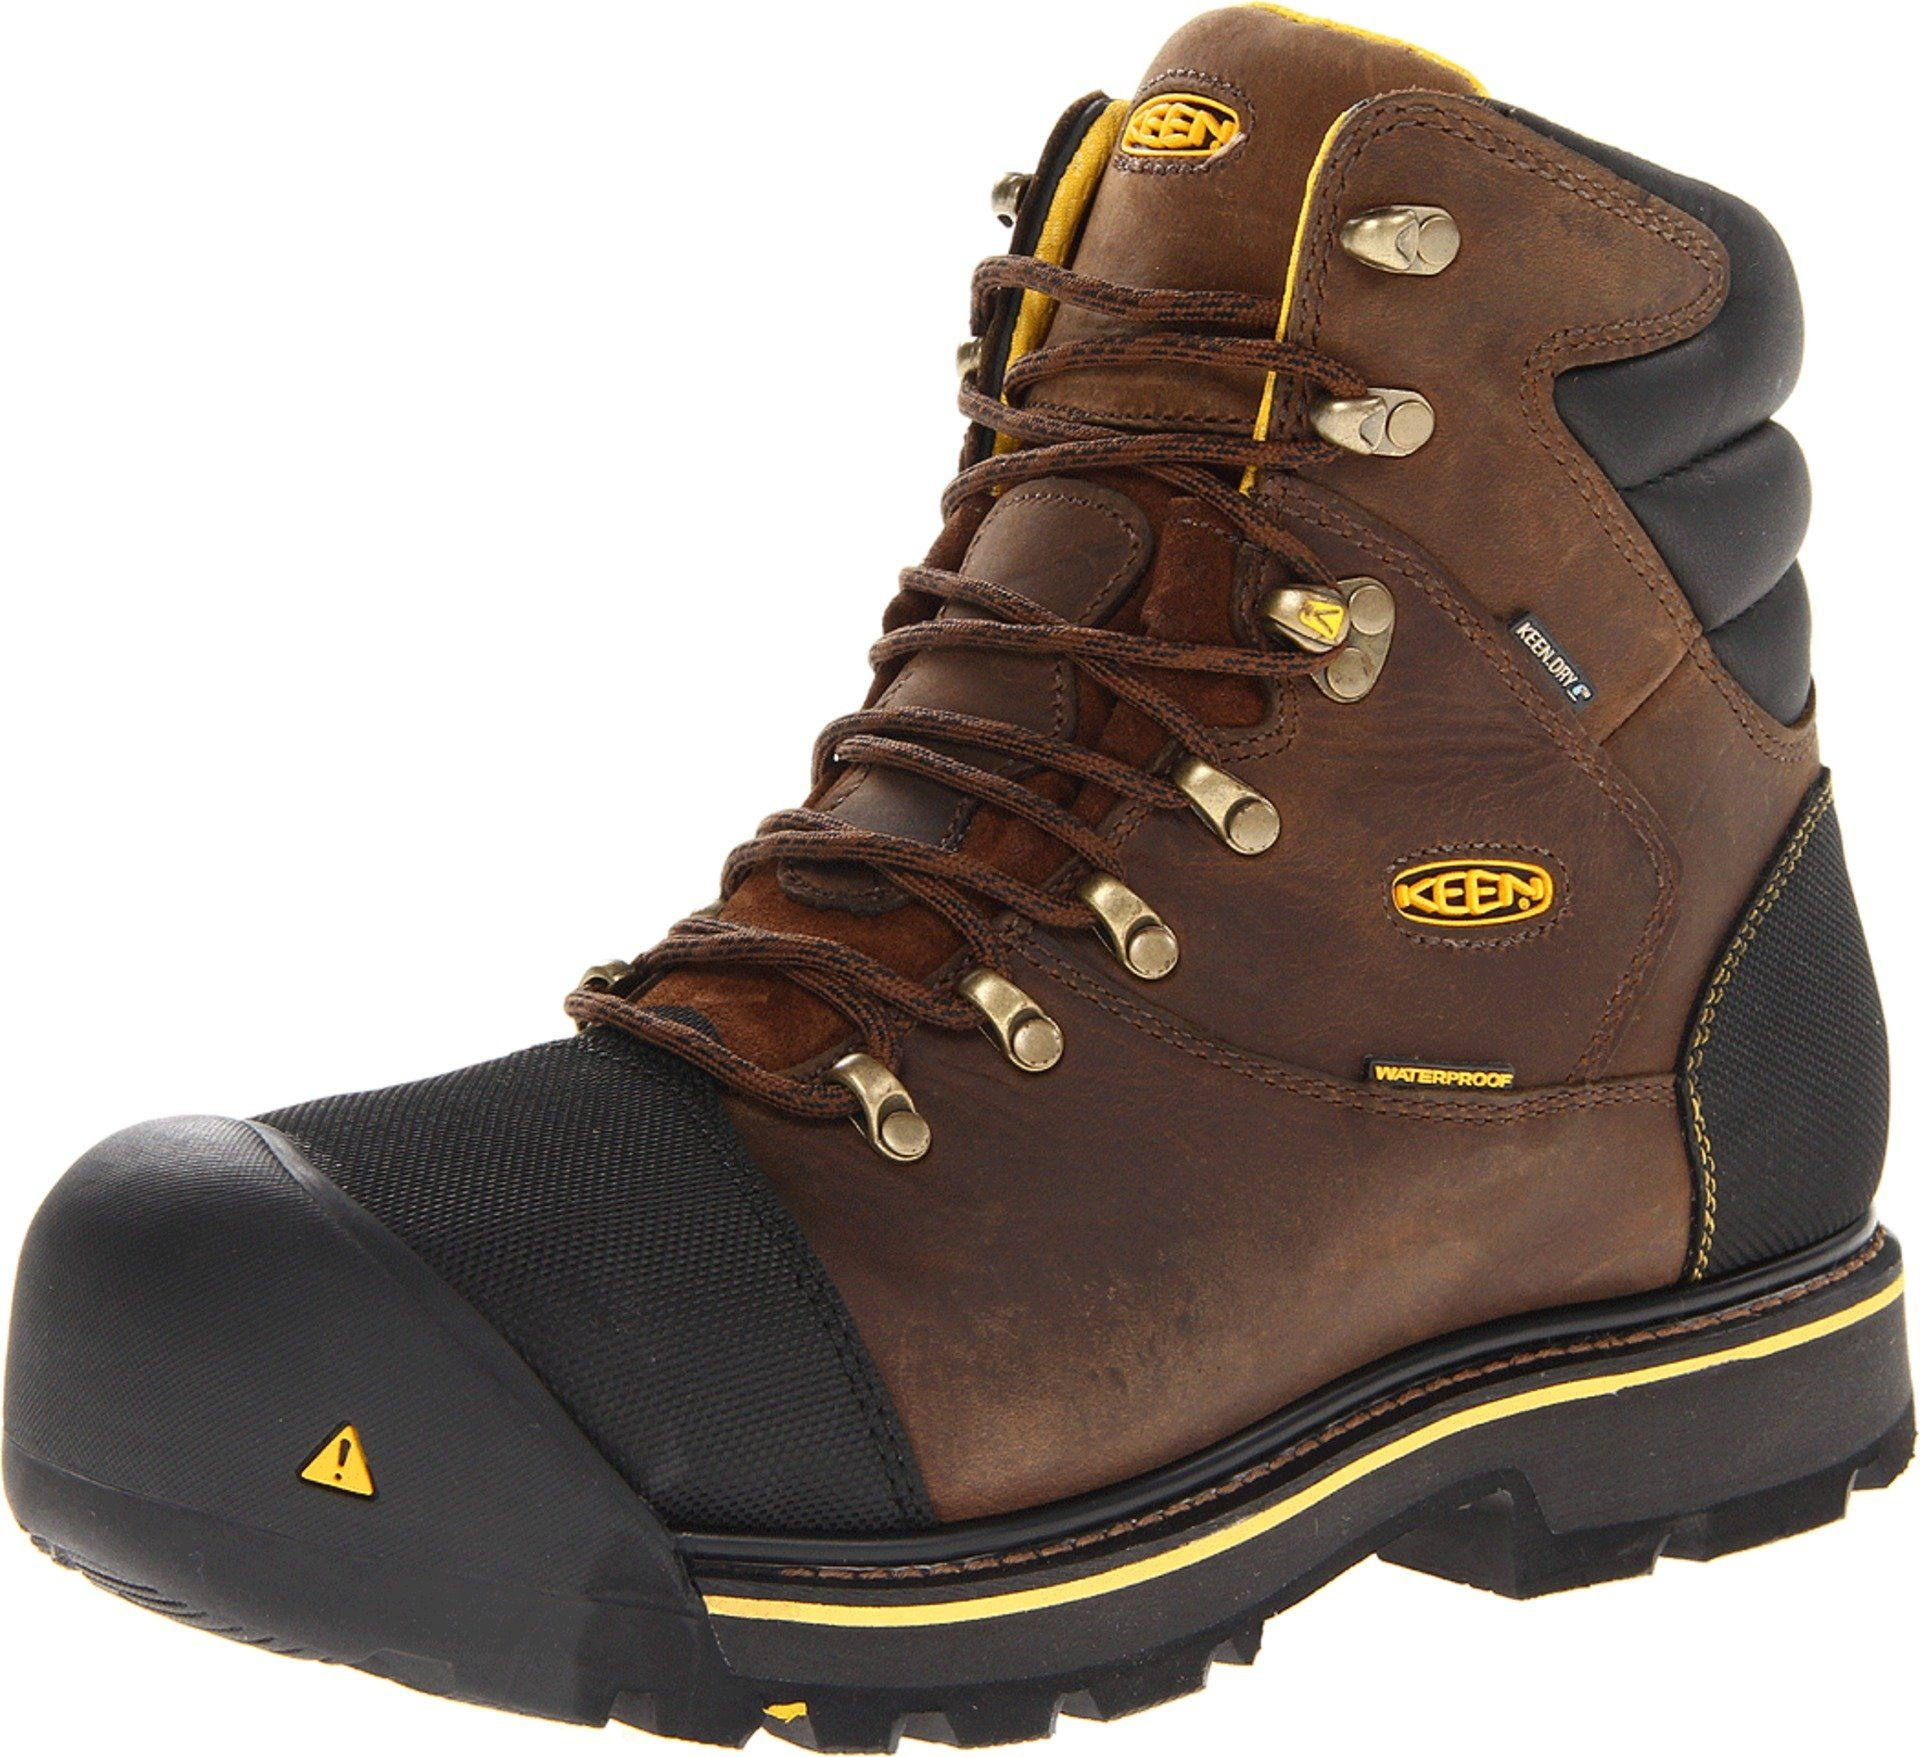 Keen Utility Mens Milwaukee Waterproof Wide Work Bootdark Earth13 D Us To View Further For This Item Visit The Image Link T Work Boots Boots Safety Shoes